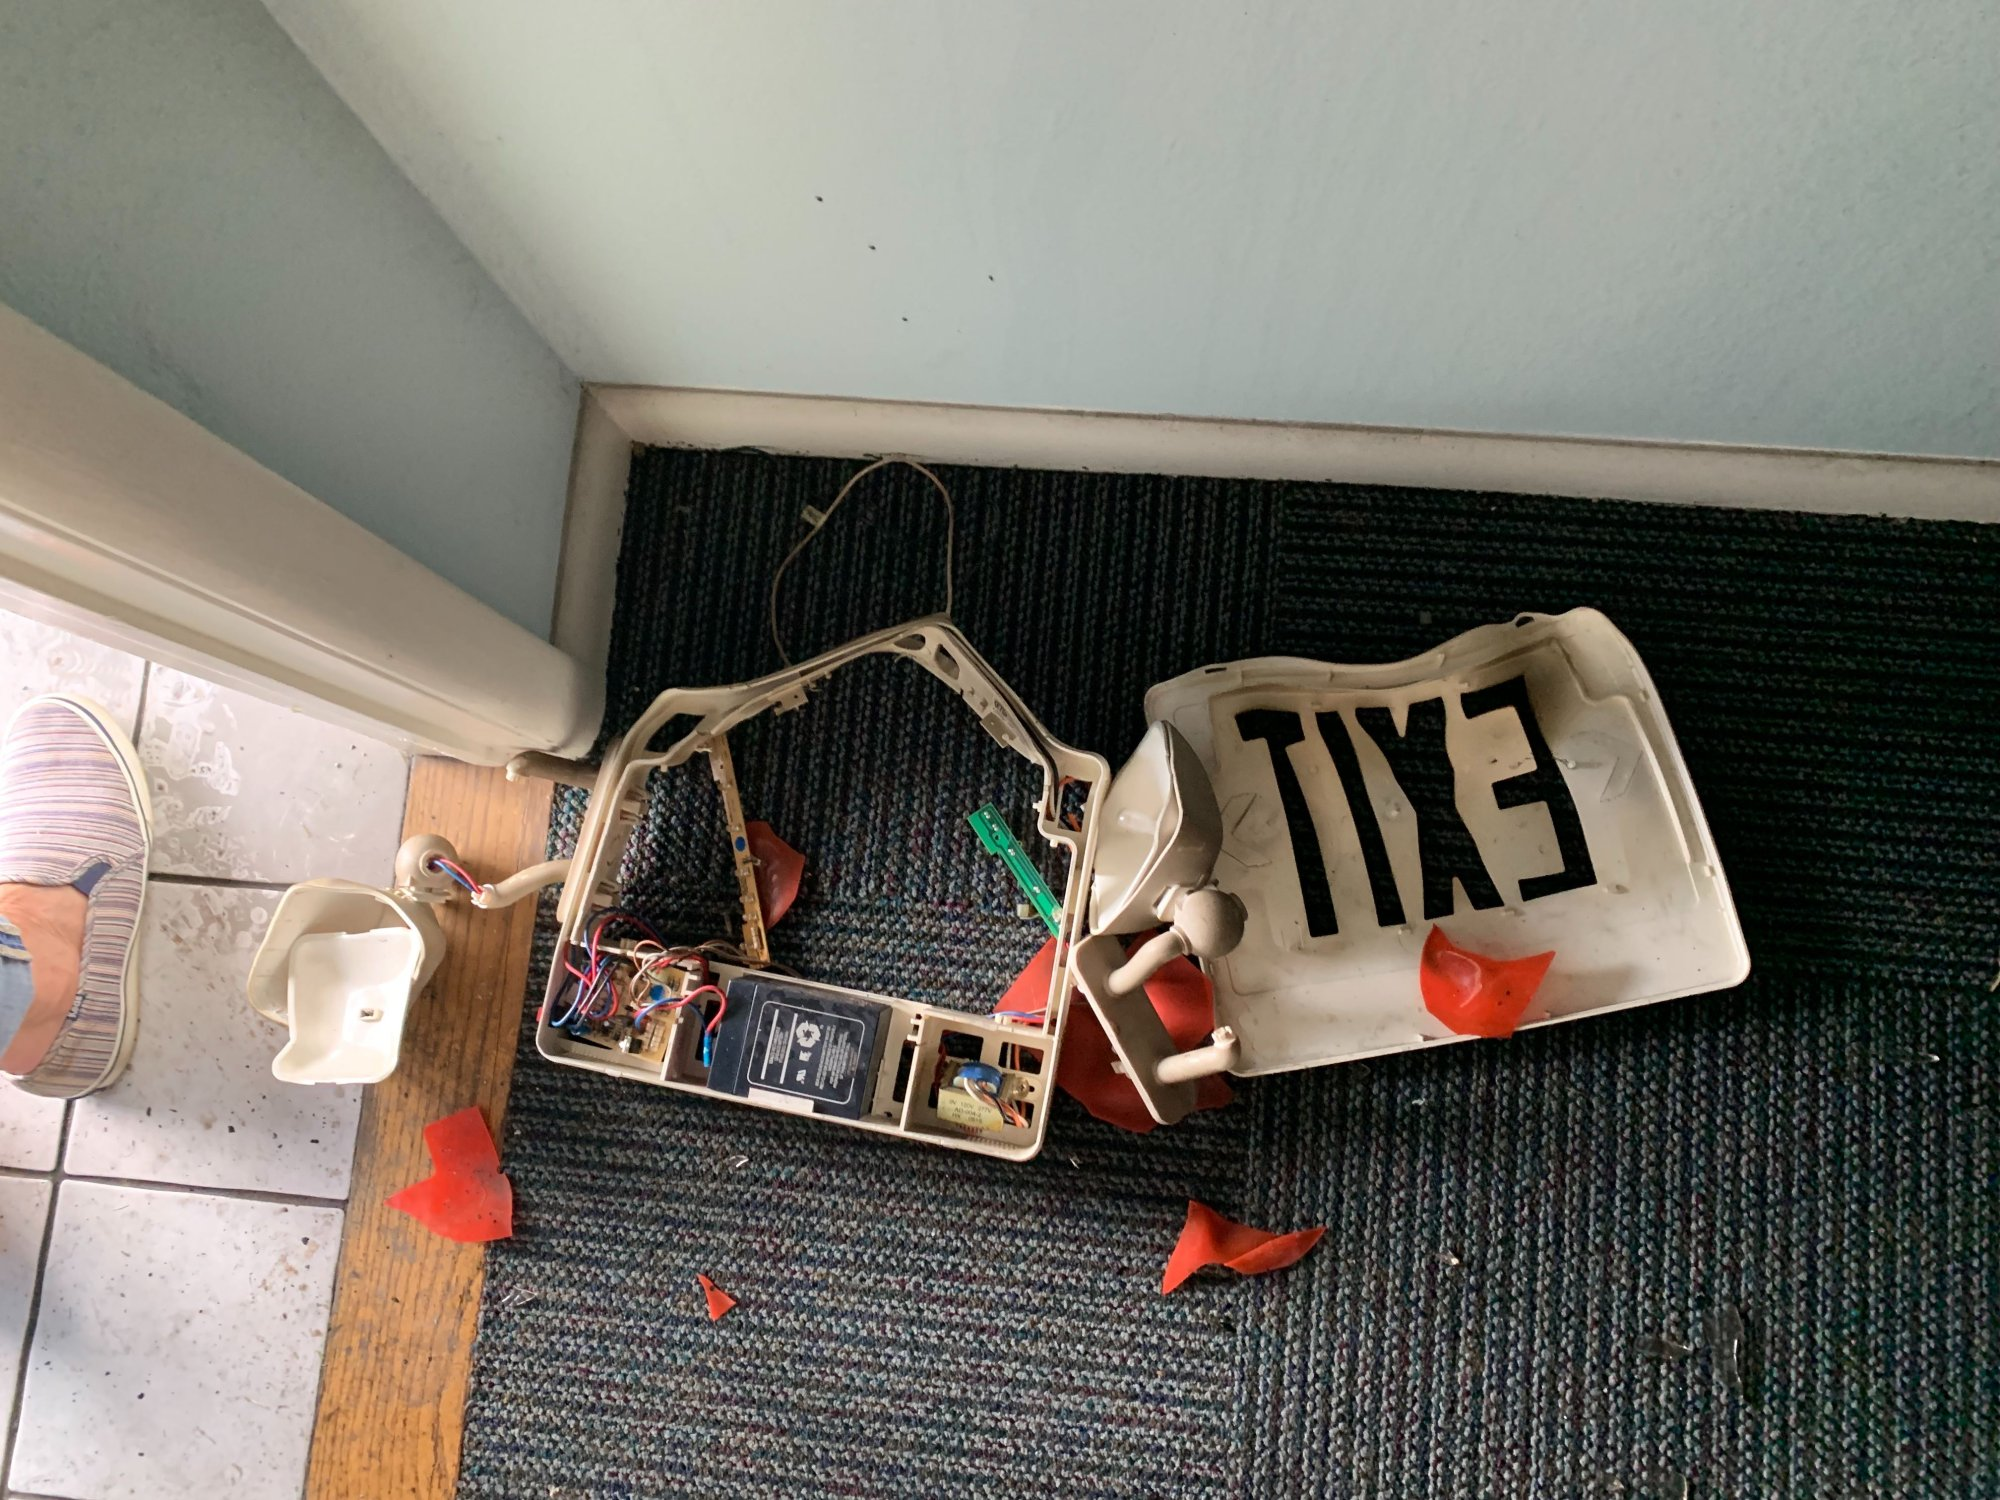 River Dental was vandalized overnight Tuesday, Sept. 10, 2019. Among the damage was this exit sign, which was knocked down and burned. (Tiffany Lee/KFSM)